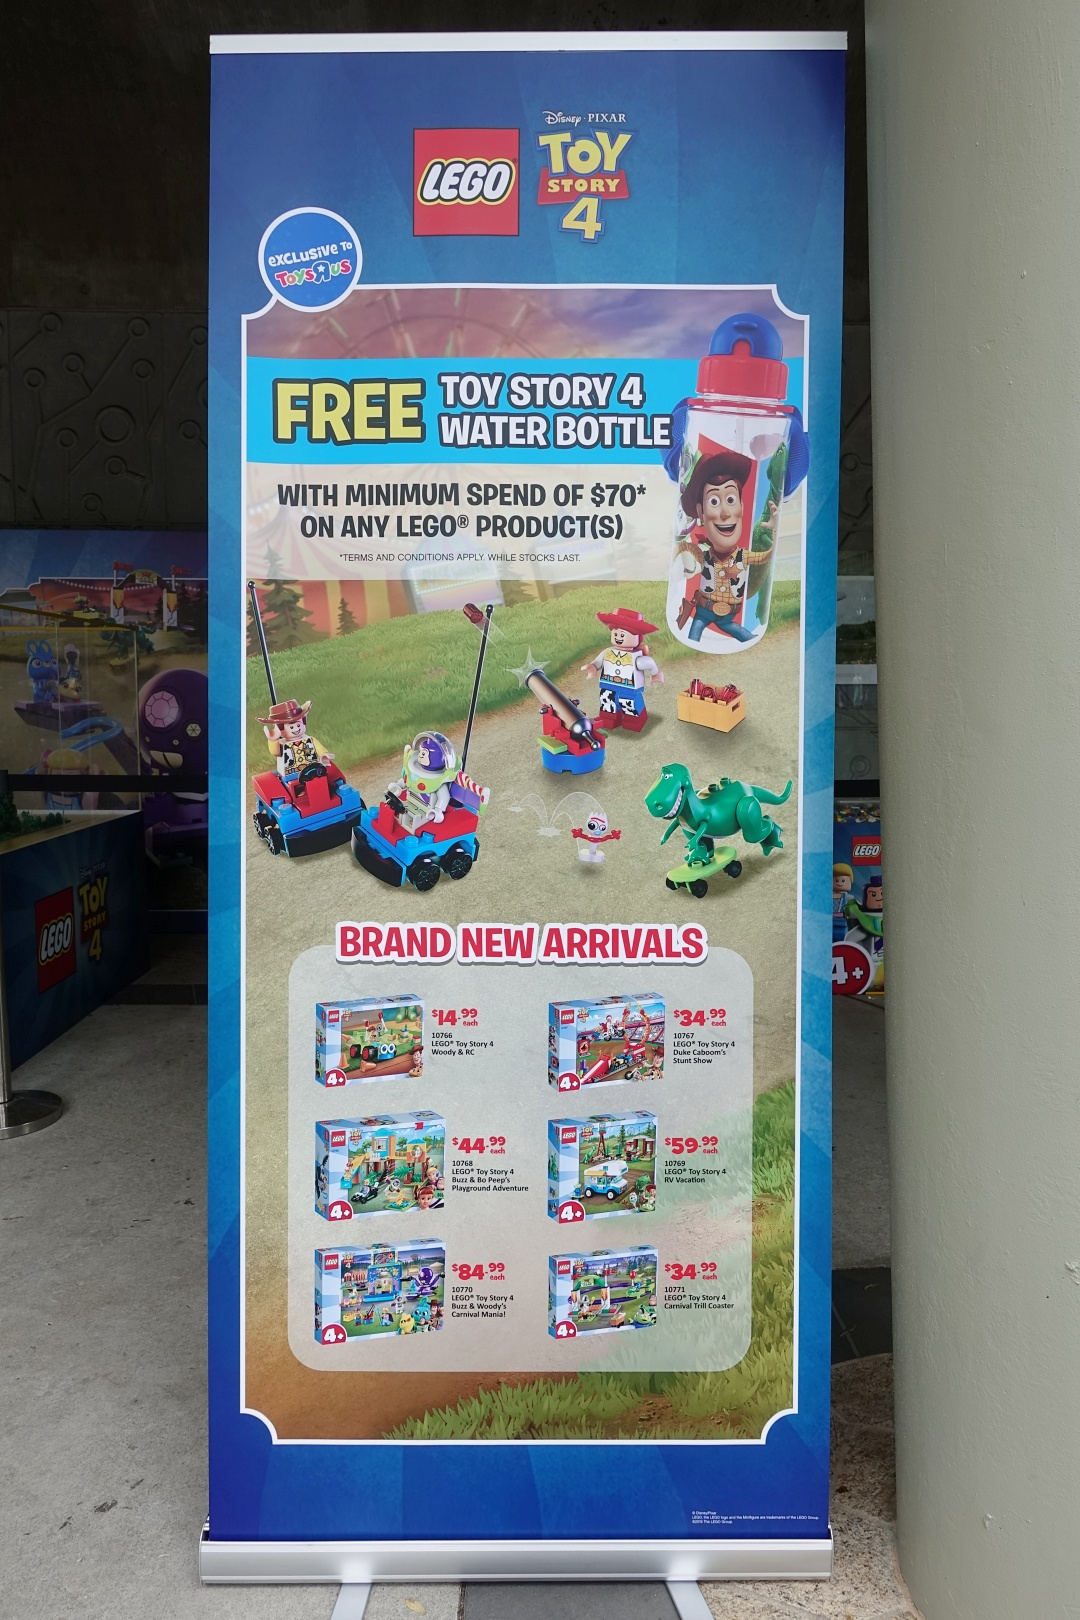 Toy Story Lego Promotion | Children's Festival at Gardens by the Bay | joanne-khoo.com